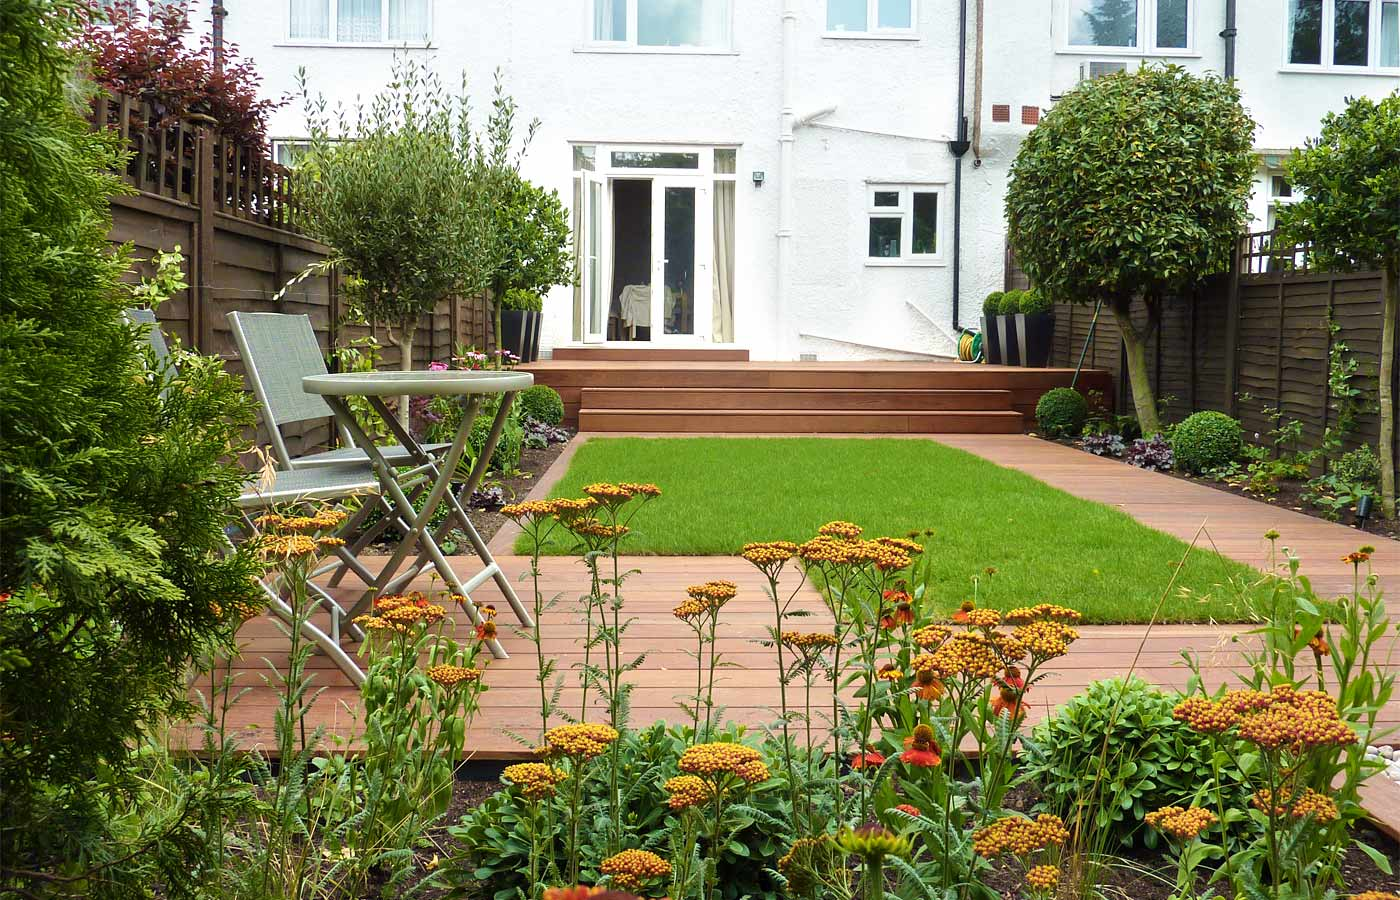 Contemporary garden design london for Small garden design ideas decking